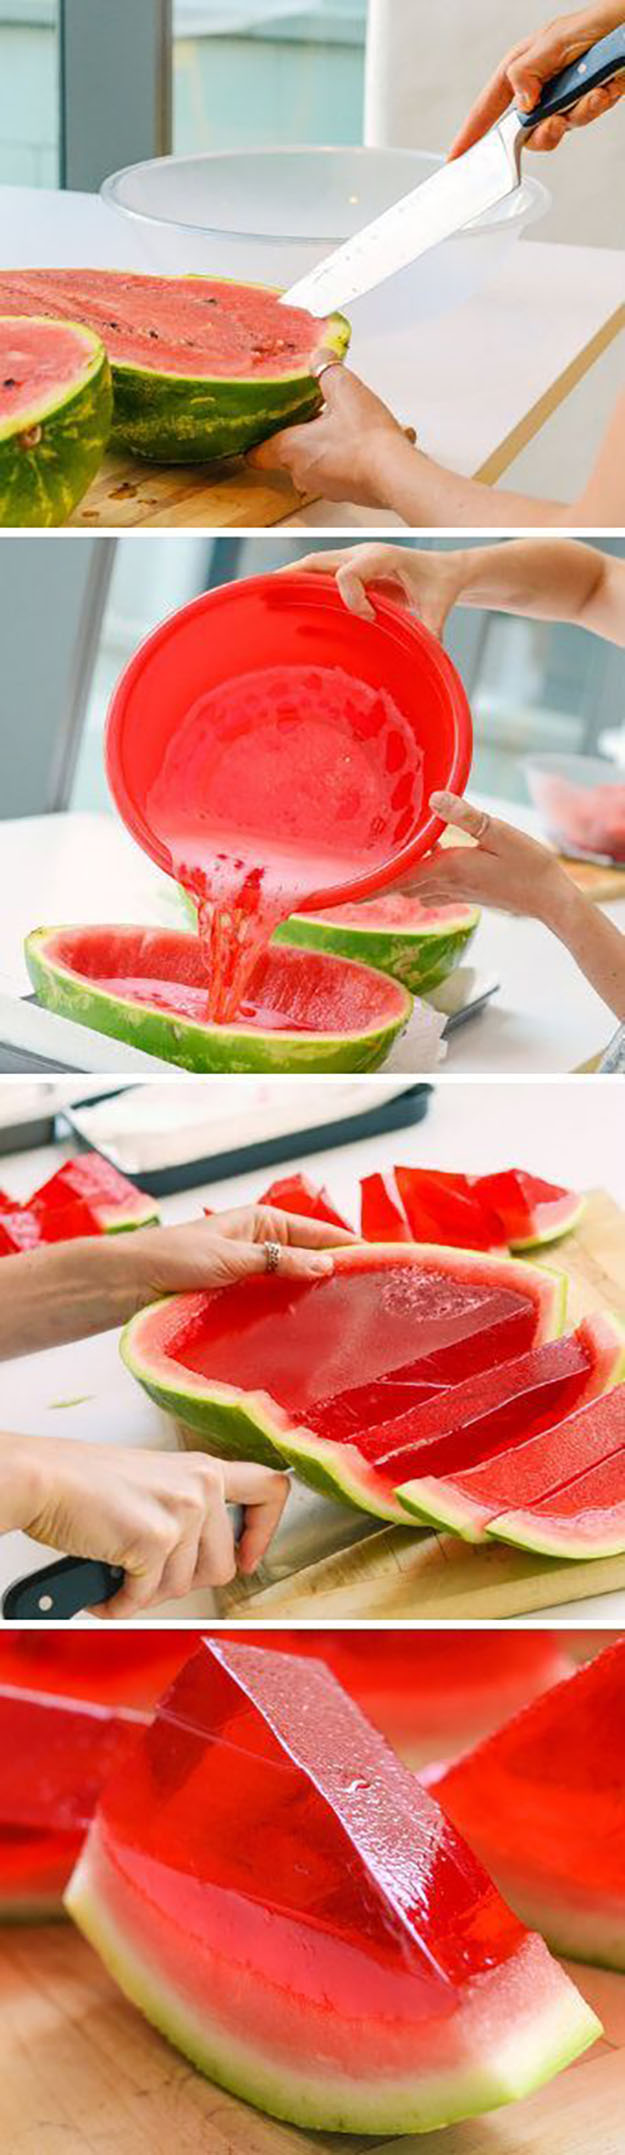 Easy Party Food Ideas | Make Ahead Cocktails | Watermelon Jello Shot Recipe | DIY Projects & Crafts by DIY JOY #appetizers #partyfood #recipes